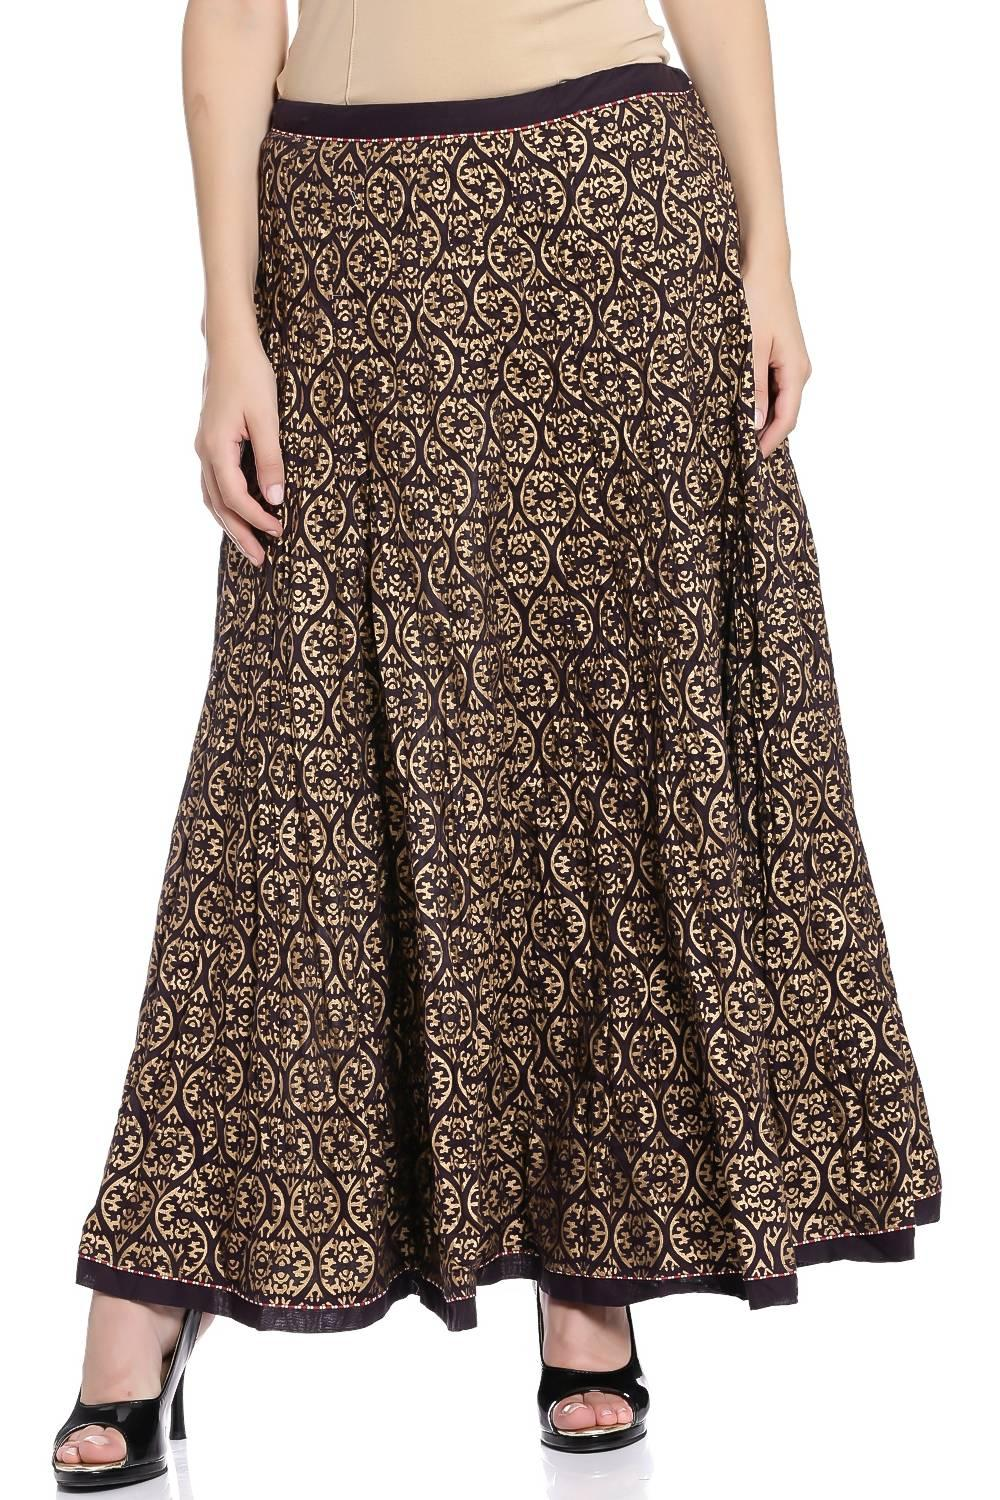 Brown & Golden Cotton Skirt - CORE13340AW17BRNGLD